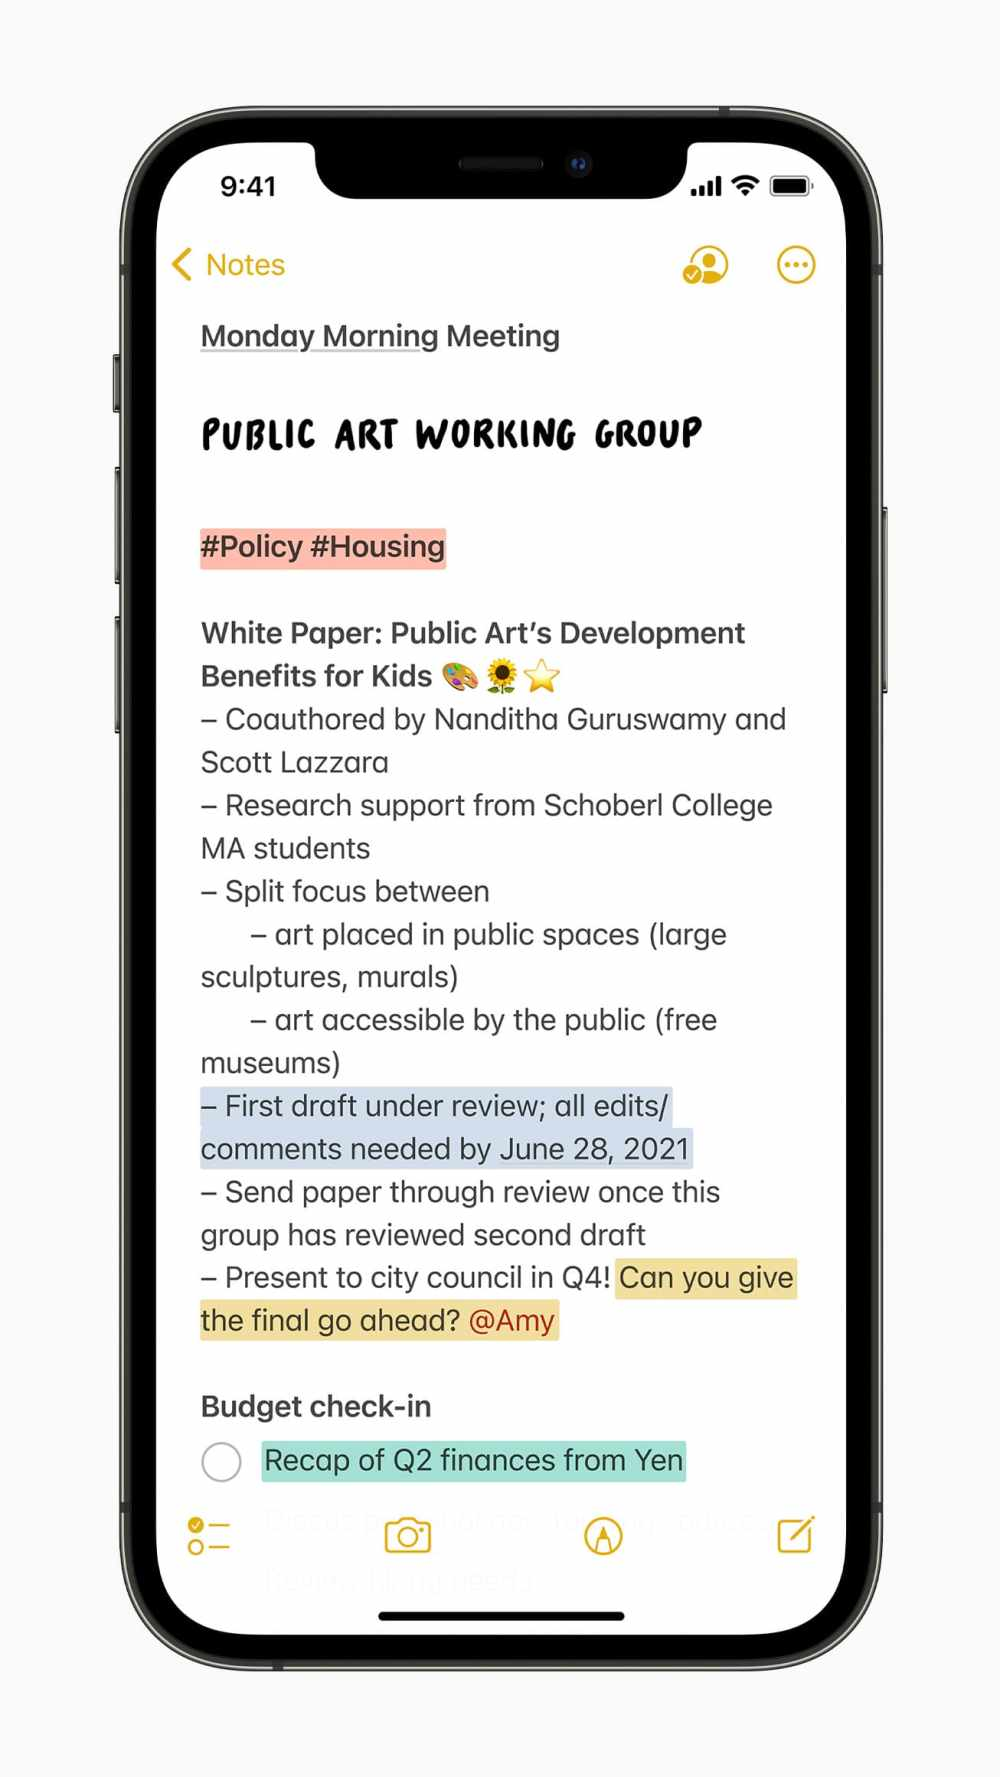 Apple-iPhone12Pro-iOS15-notes-060721